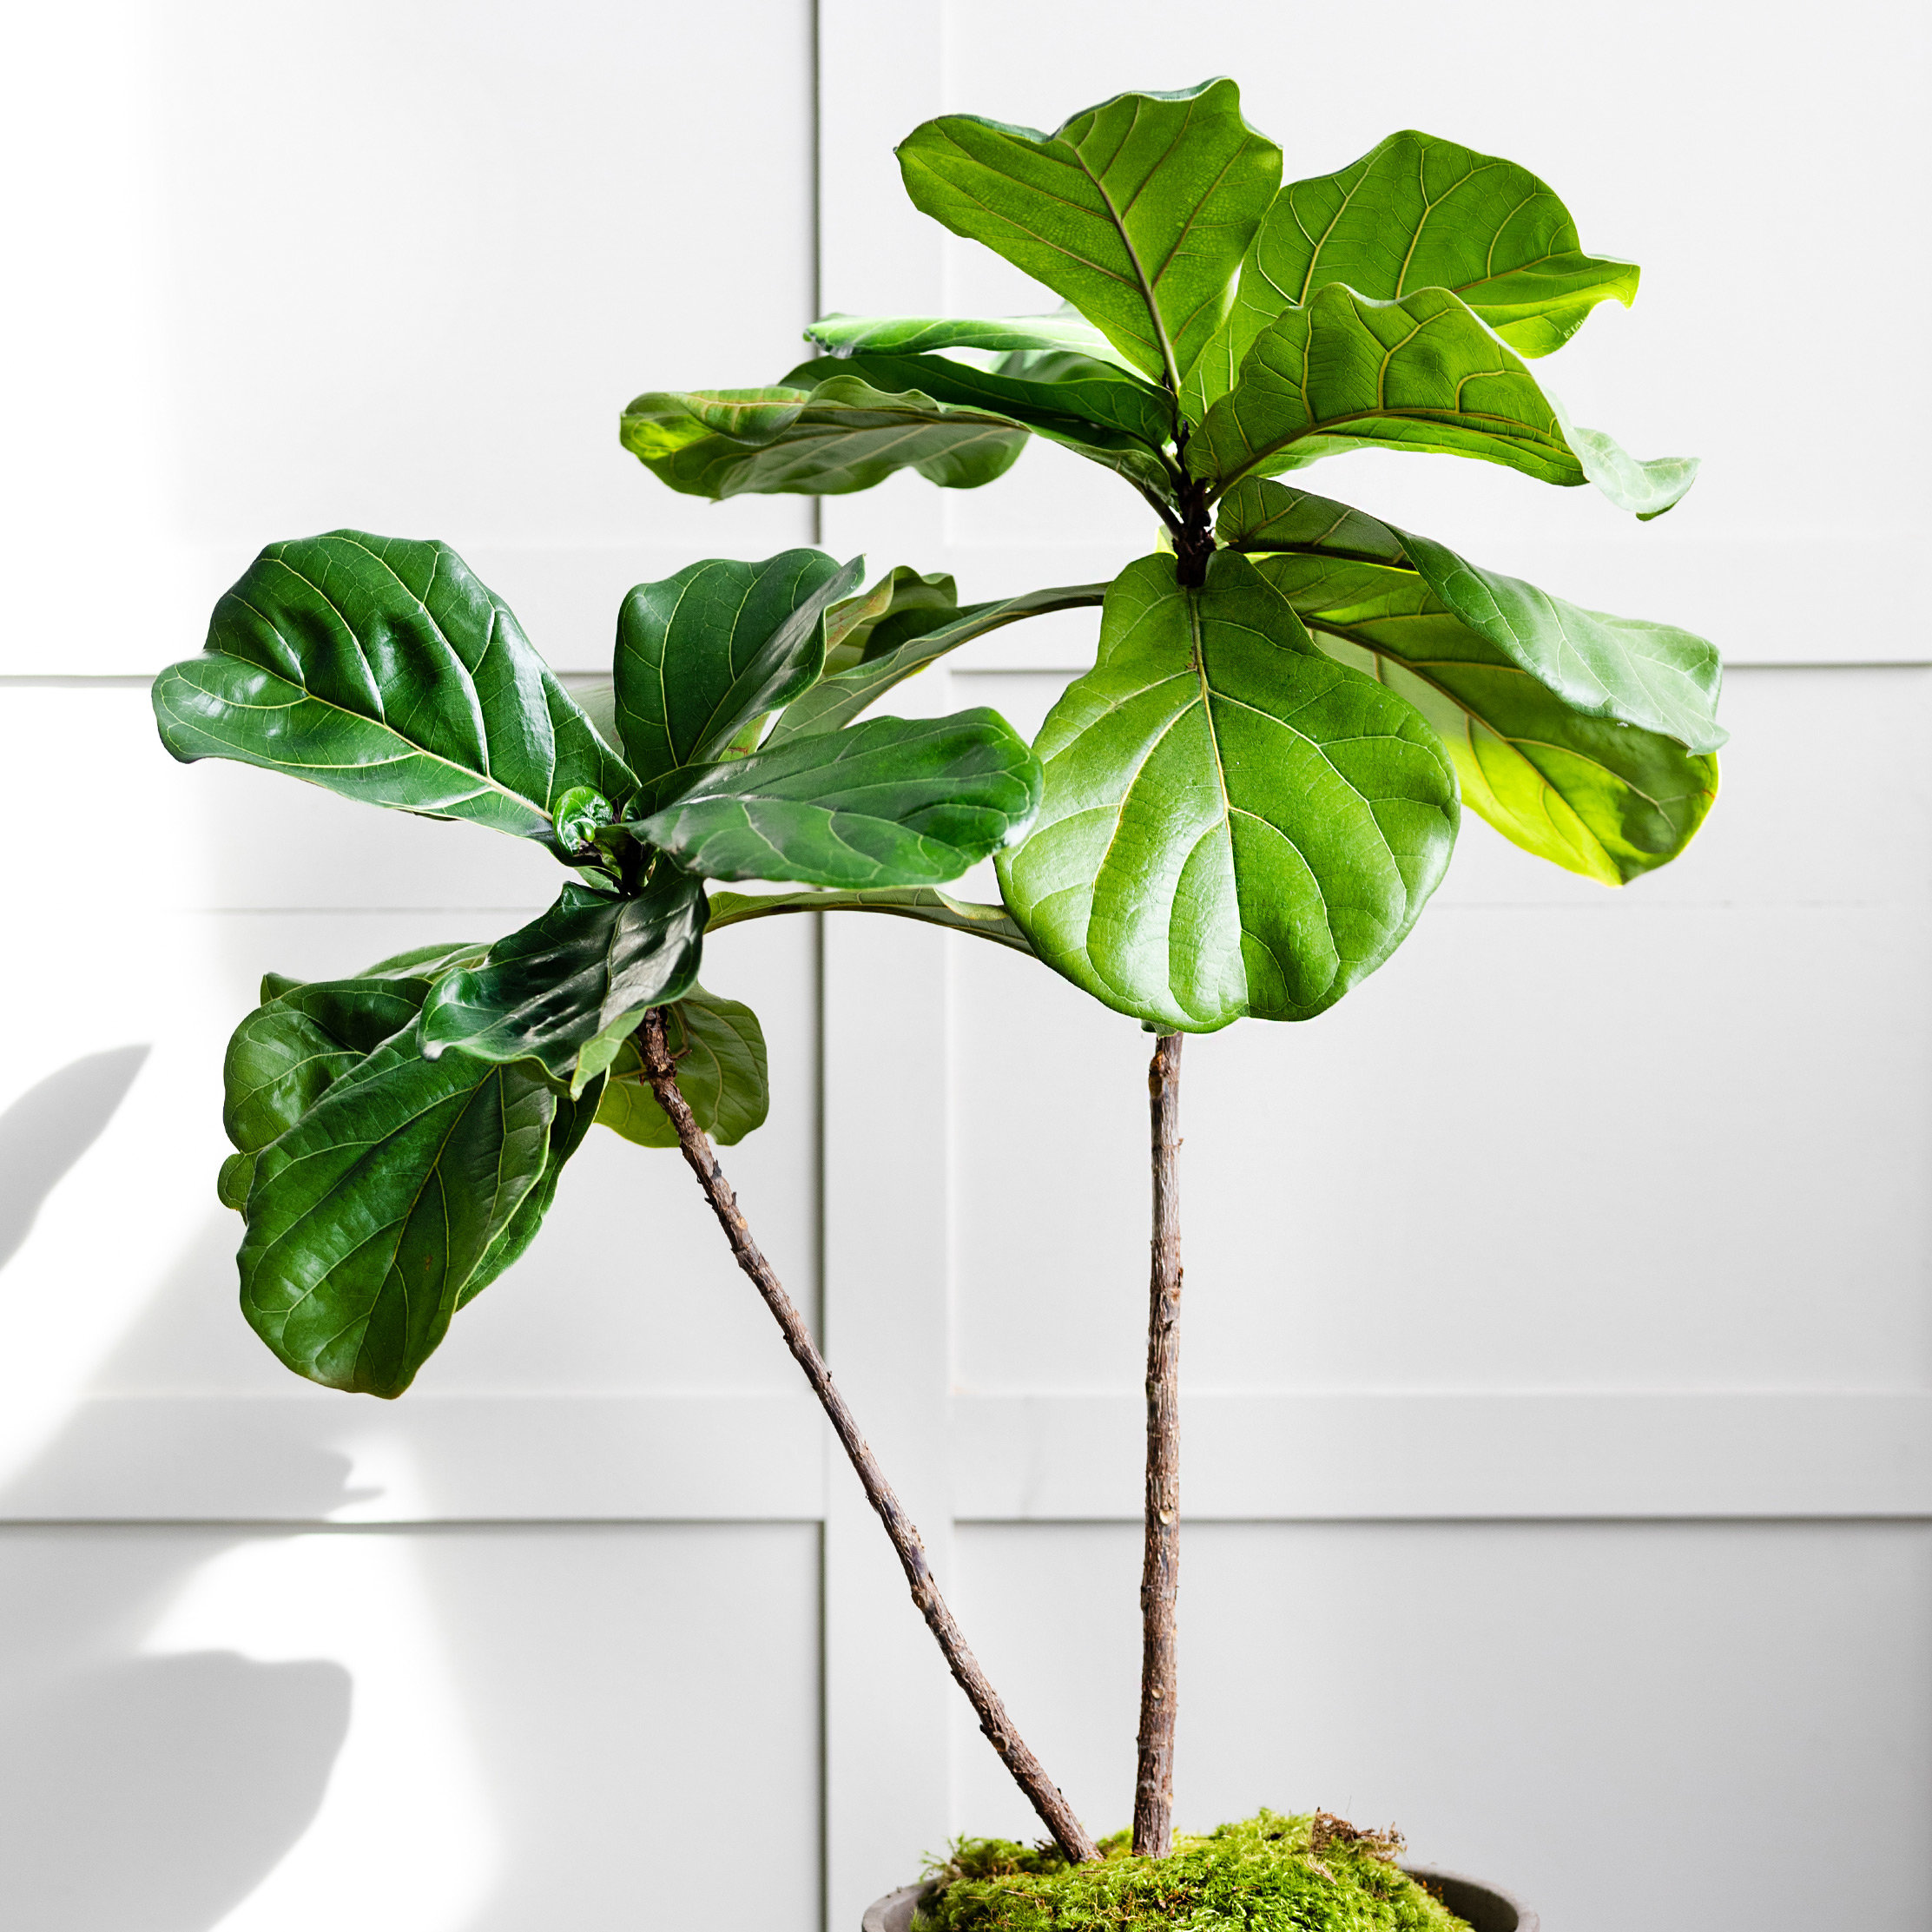 Houseplant Help: Cat's Fiddle Leaf Fig Comeback